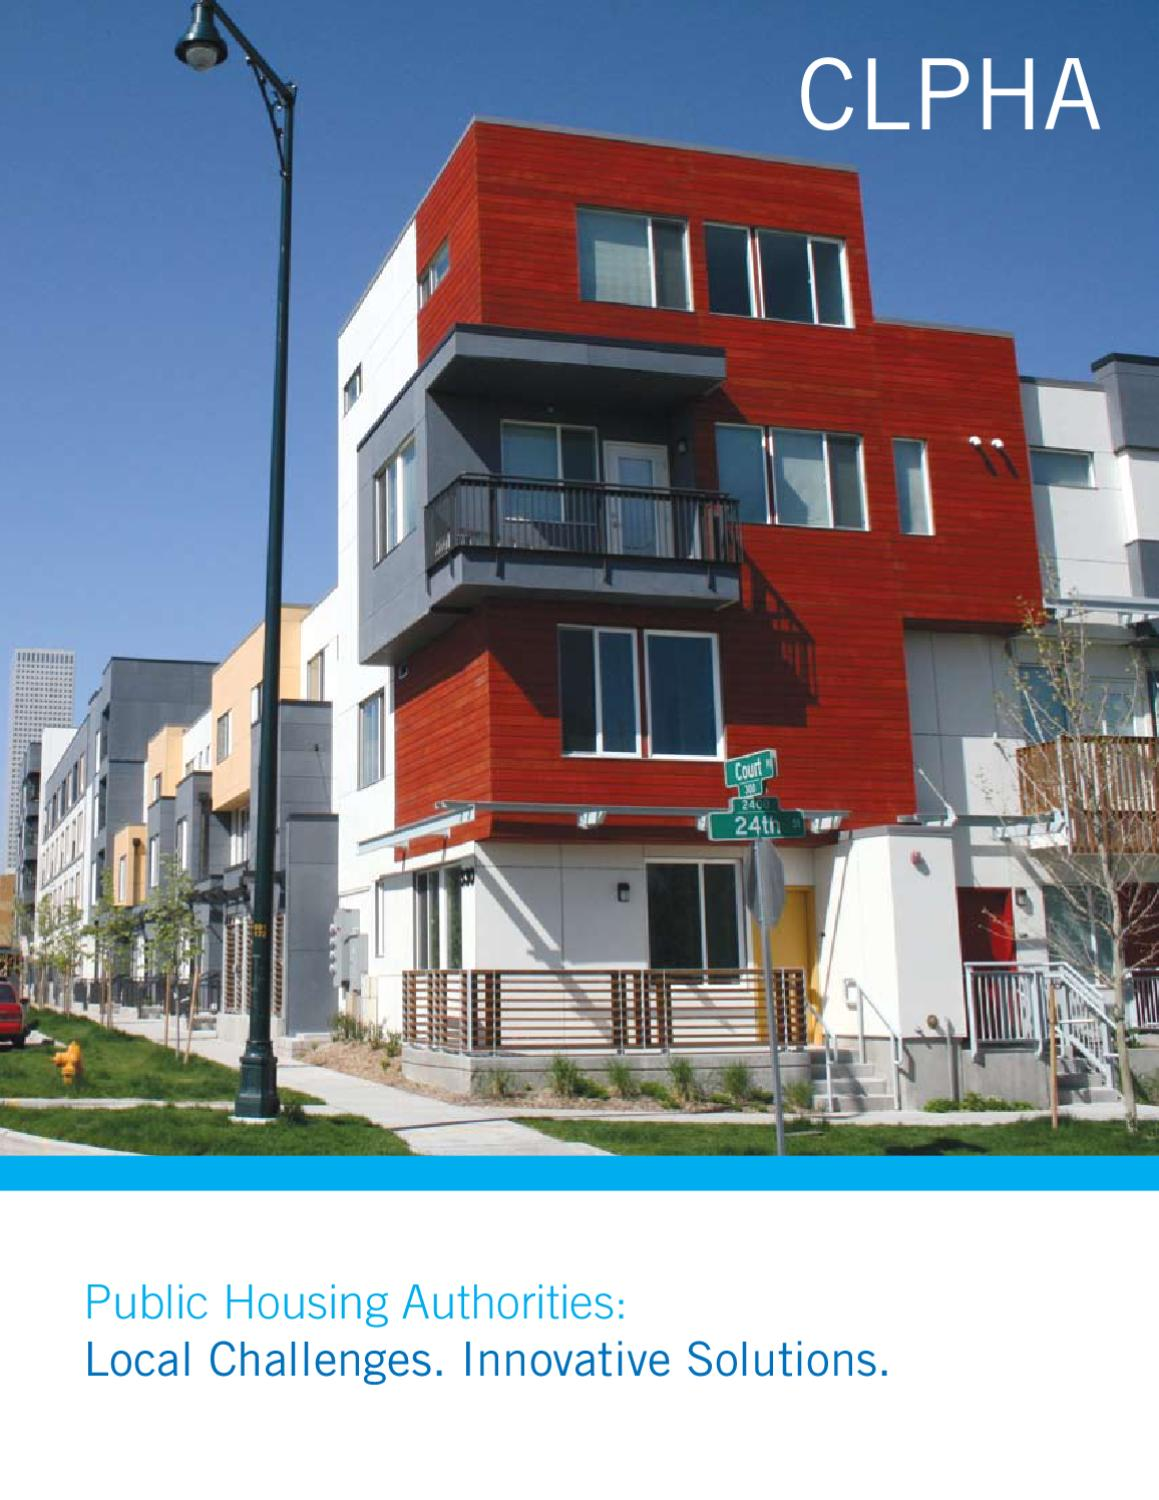 public housing authorities: local challenges. innovative solutions